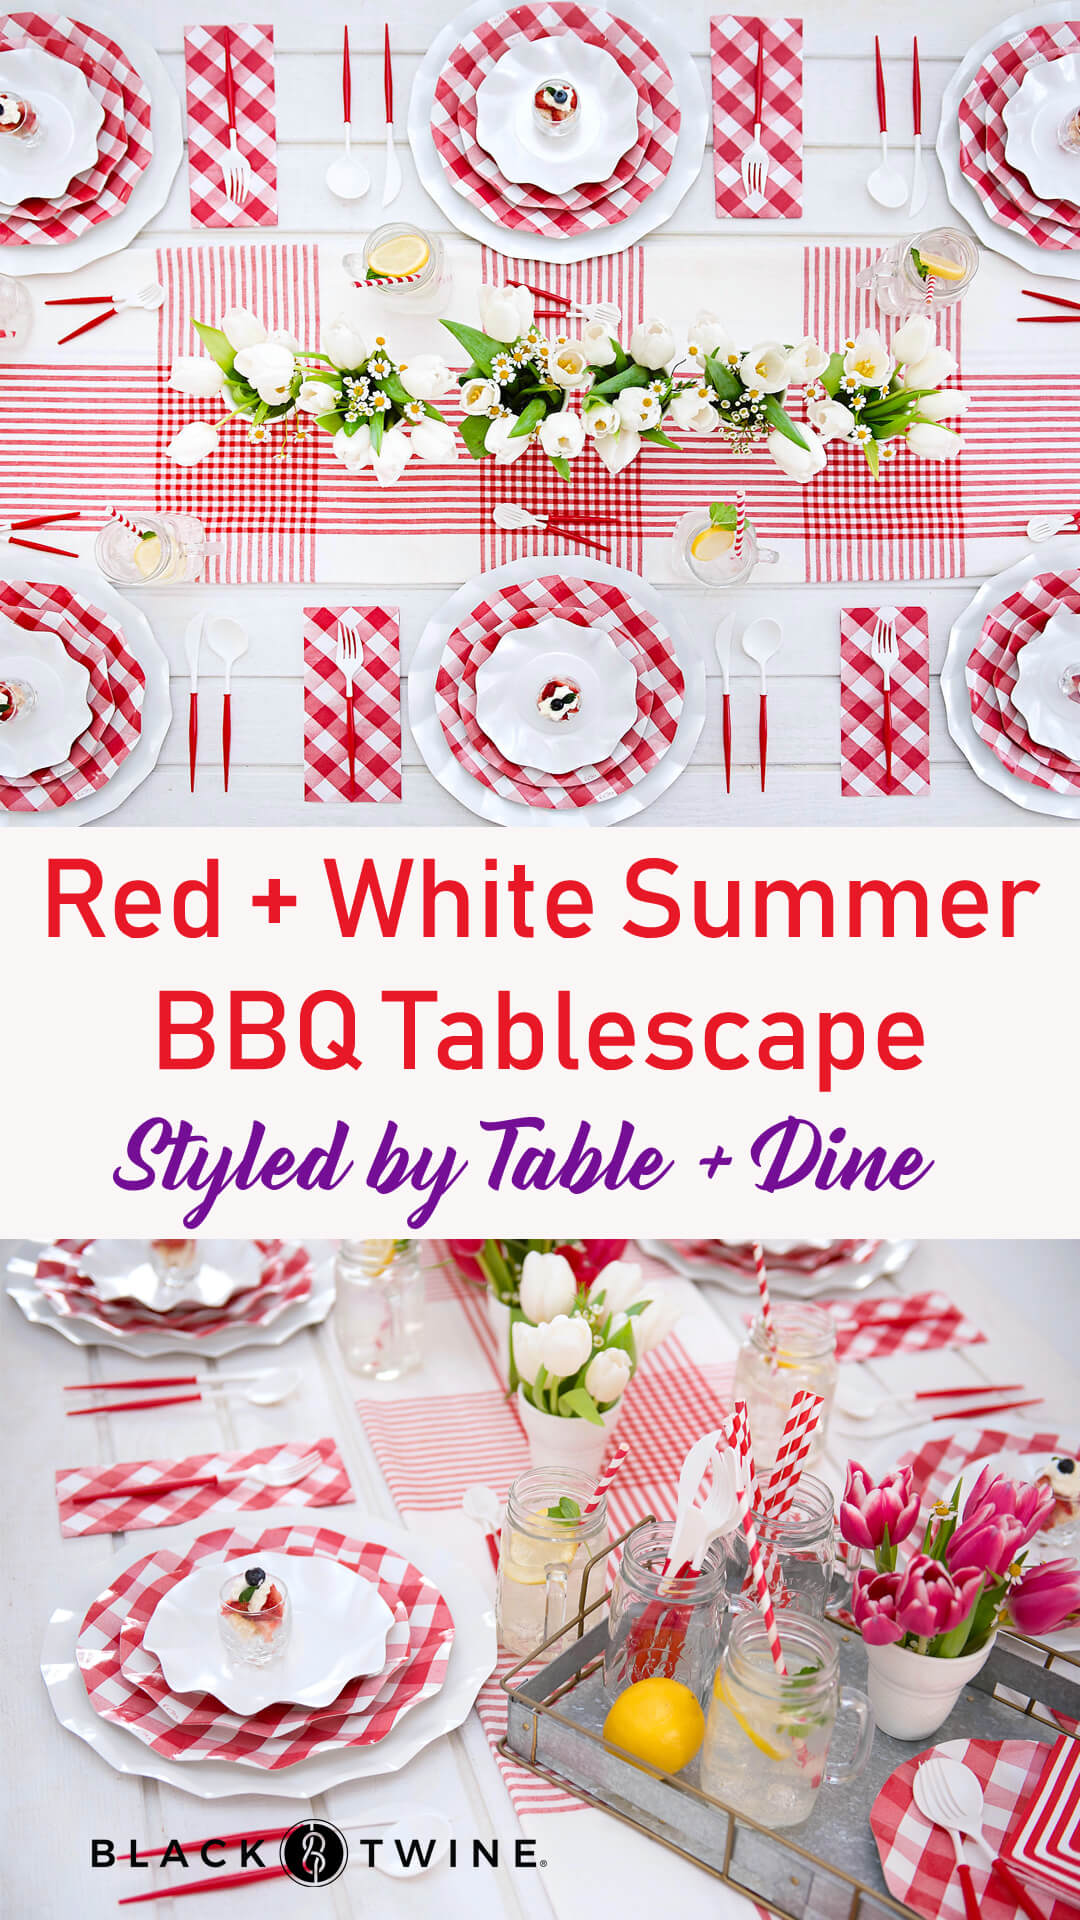 Tablescape and Place Setting from Red + White Summer BBQ Tablescape styled by Table + Dine | Black Twine